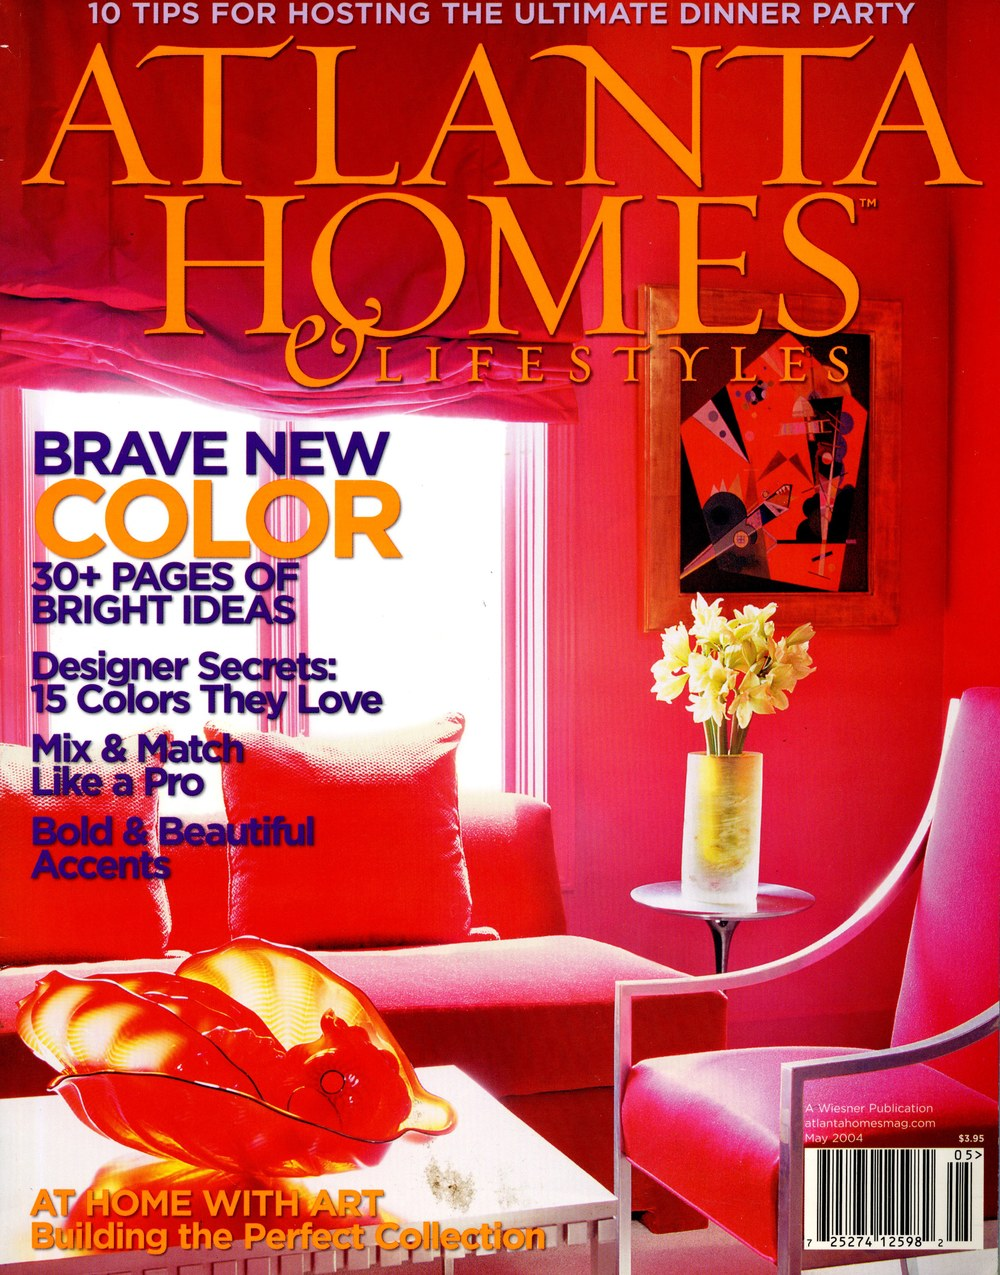 Atlanta Homes and Lifestyles  May 2004